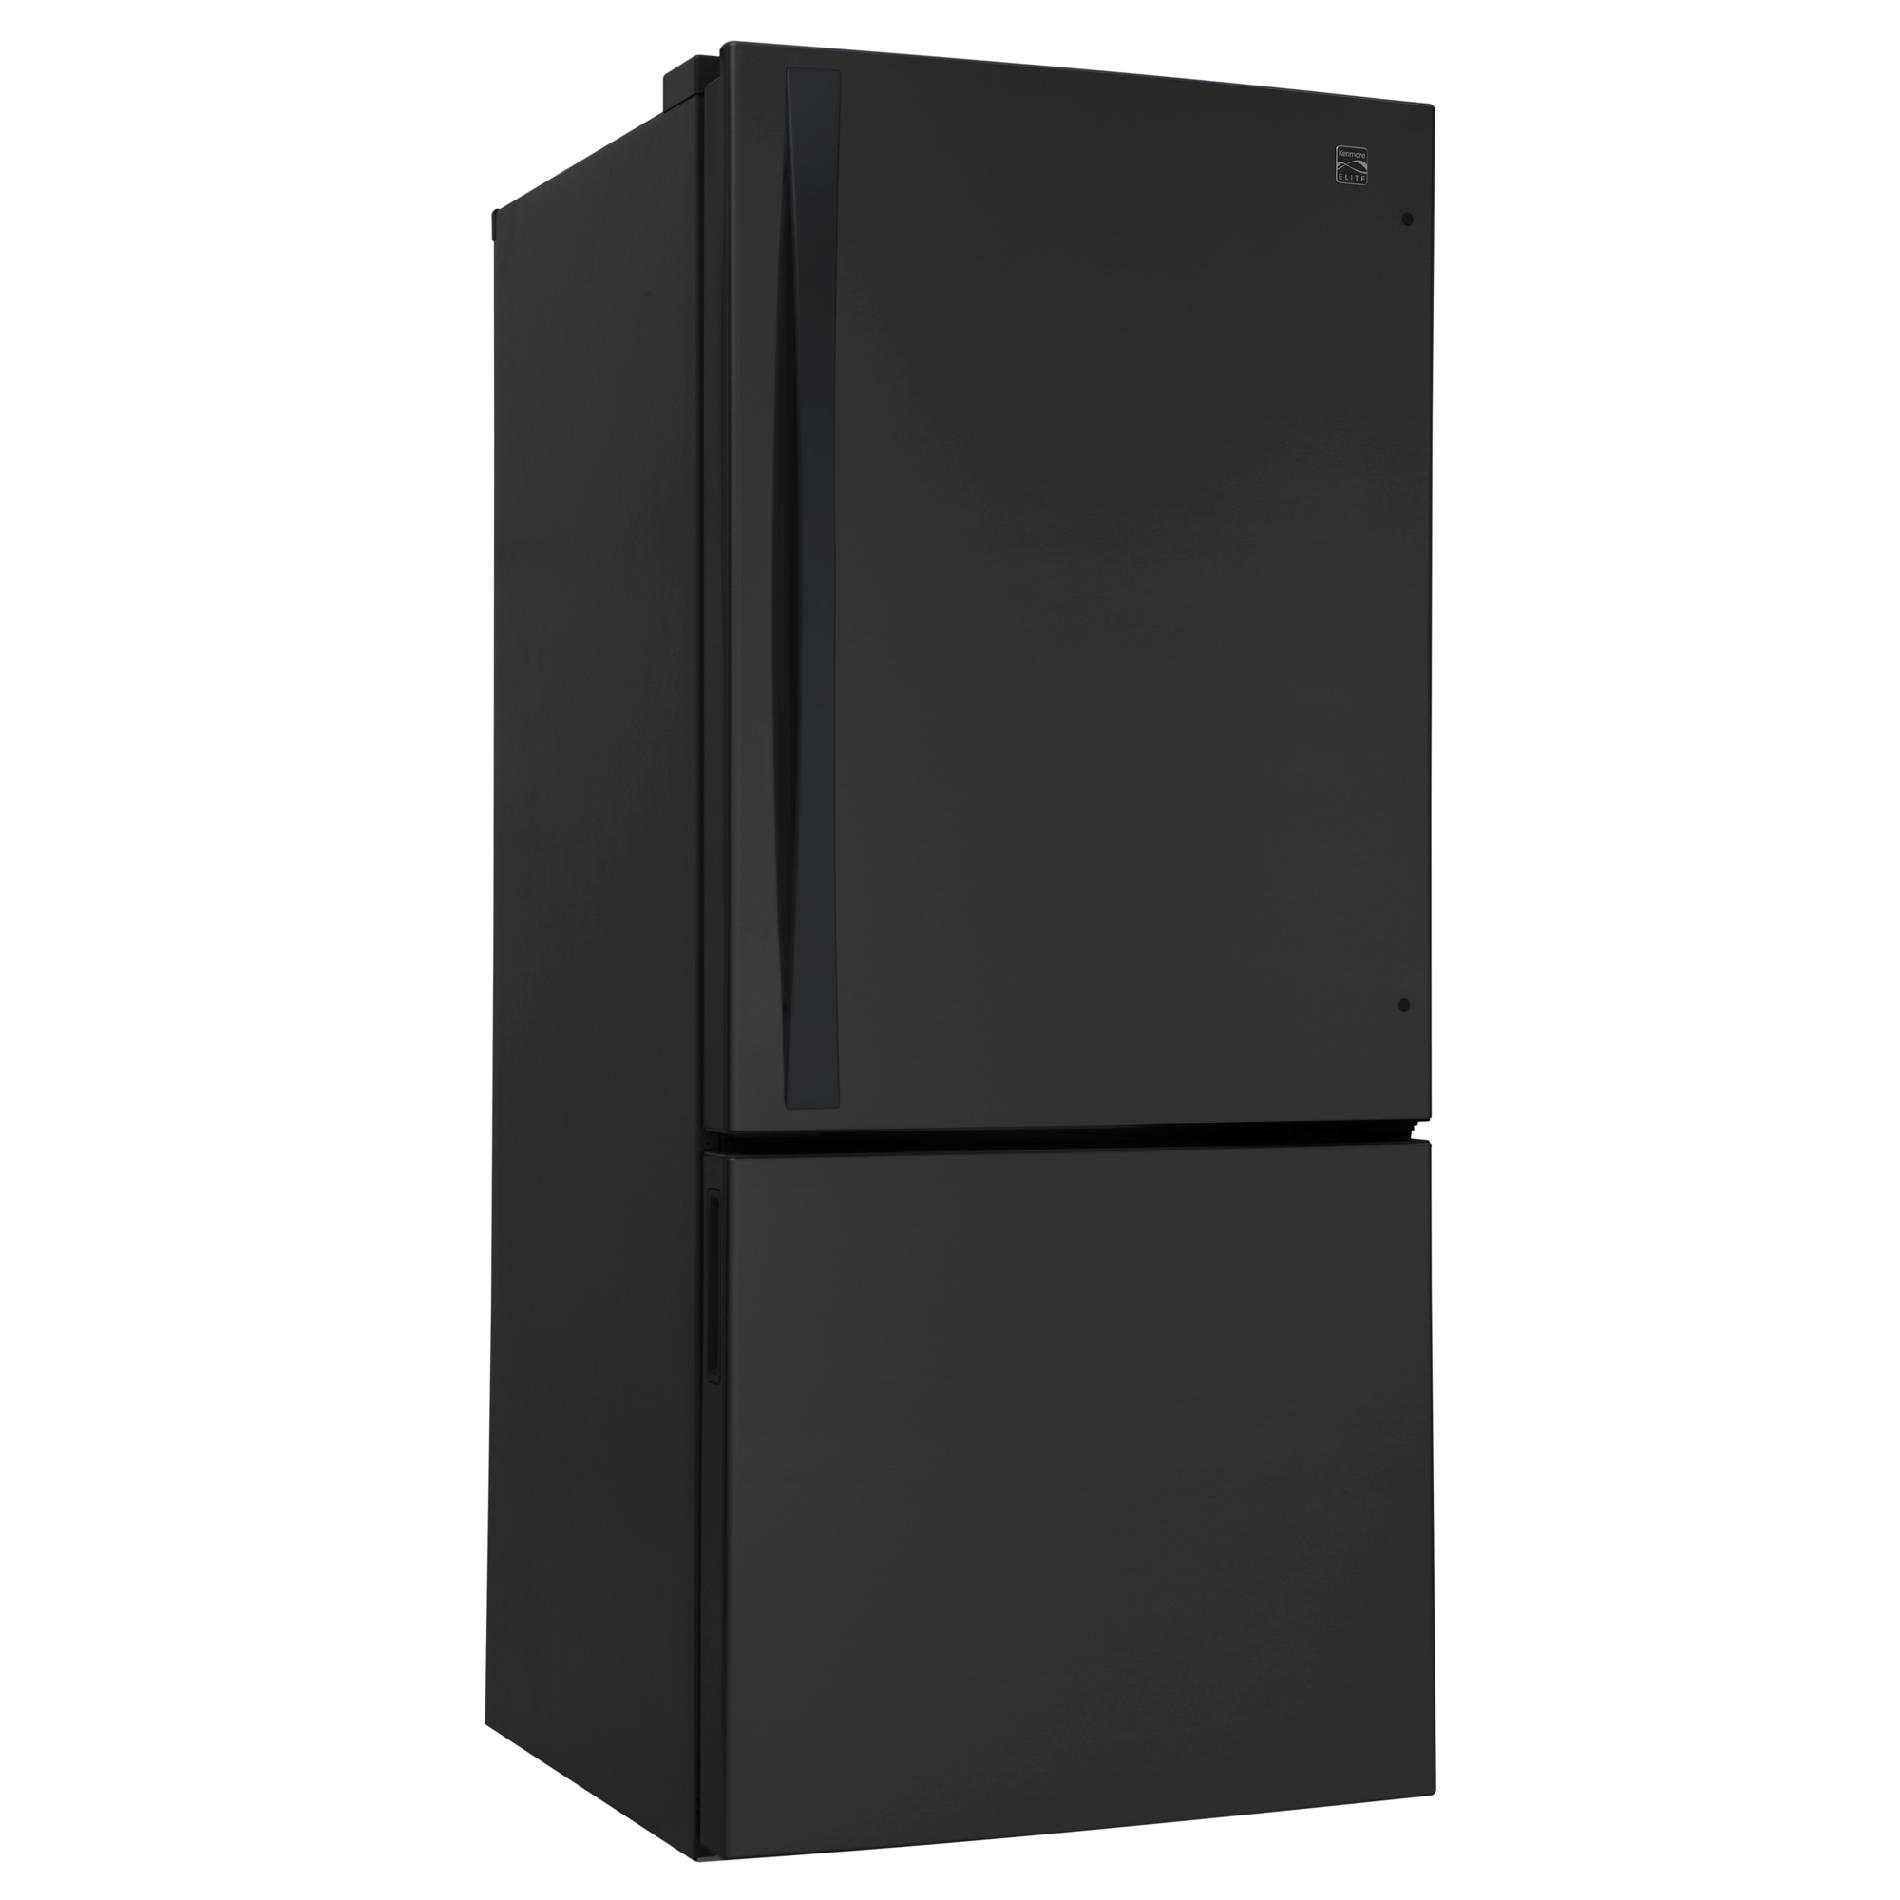 Kenmore Elite 22 cu. ft. Bottom-Freezer Refrigerator - Black